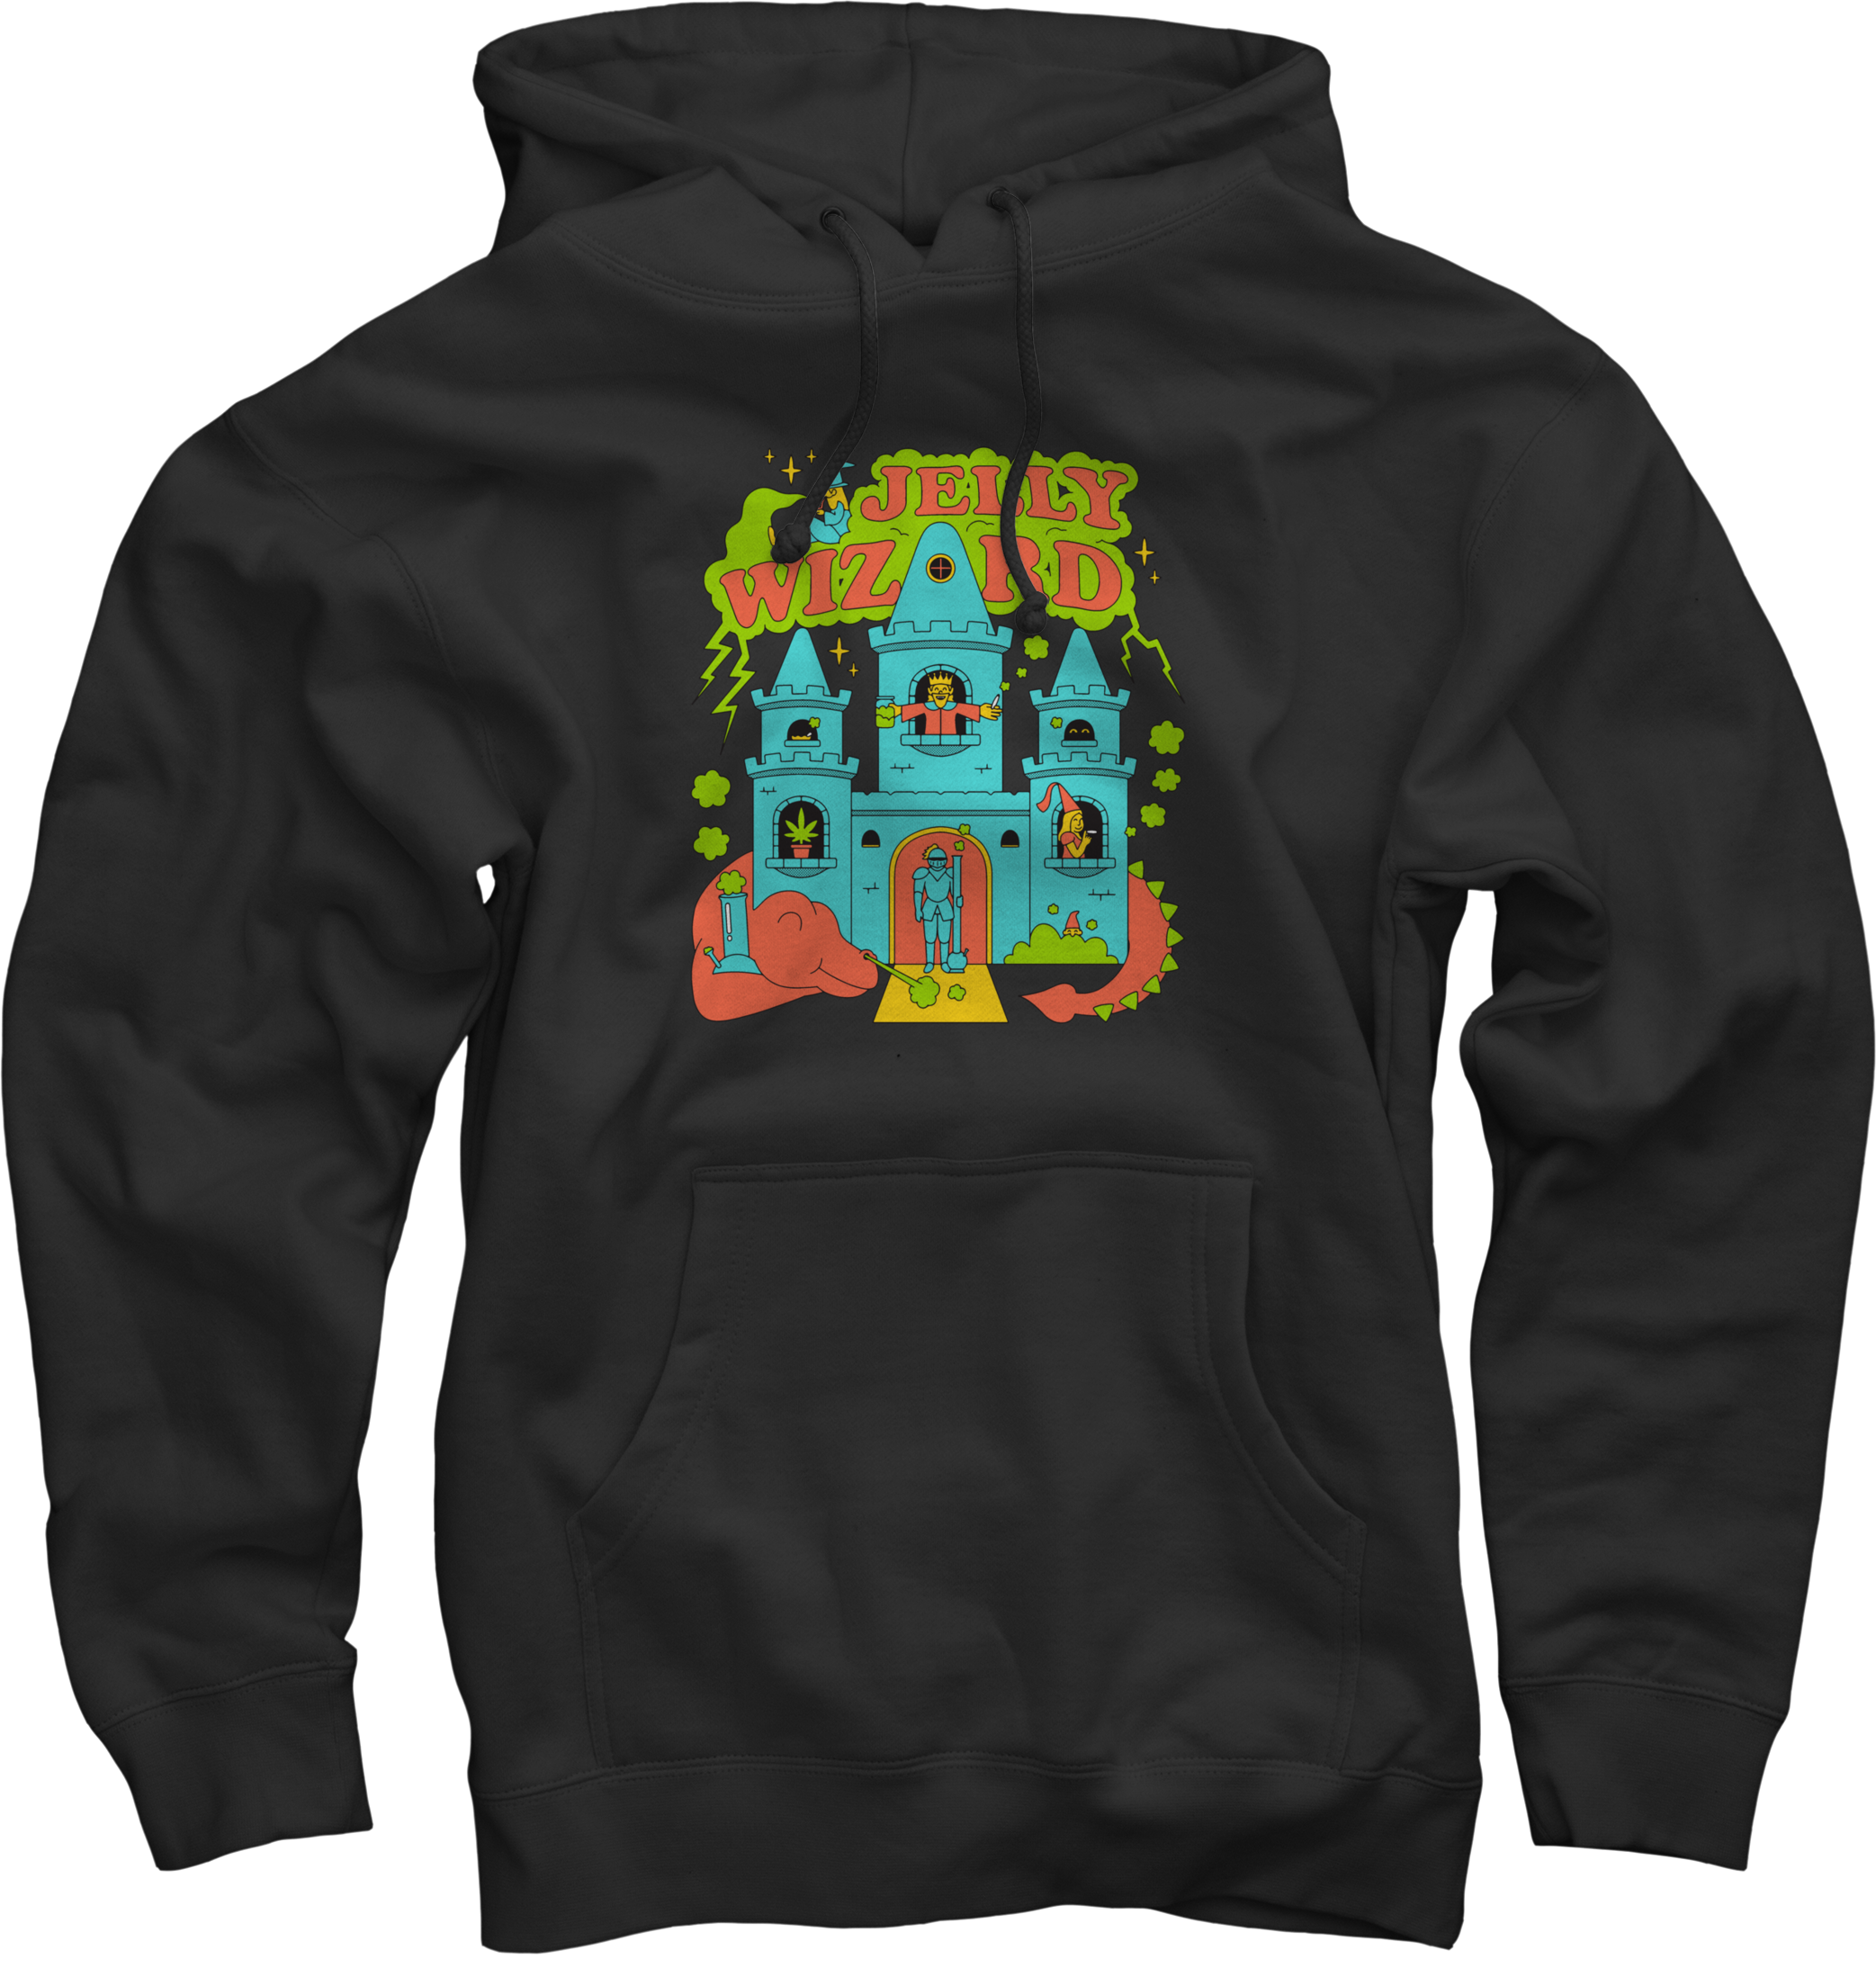 JWIZZY'S DUNGEON HOODIE